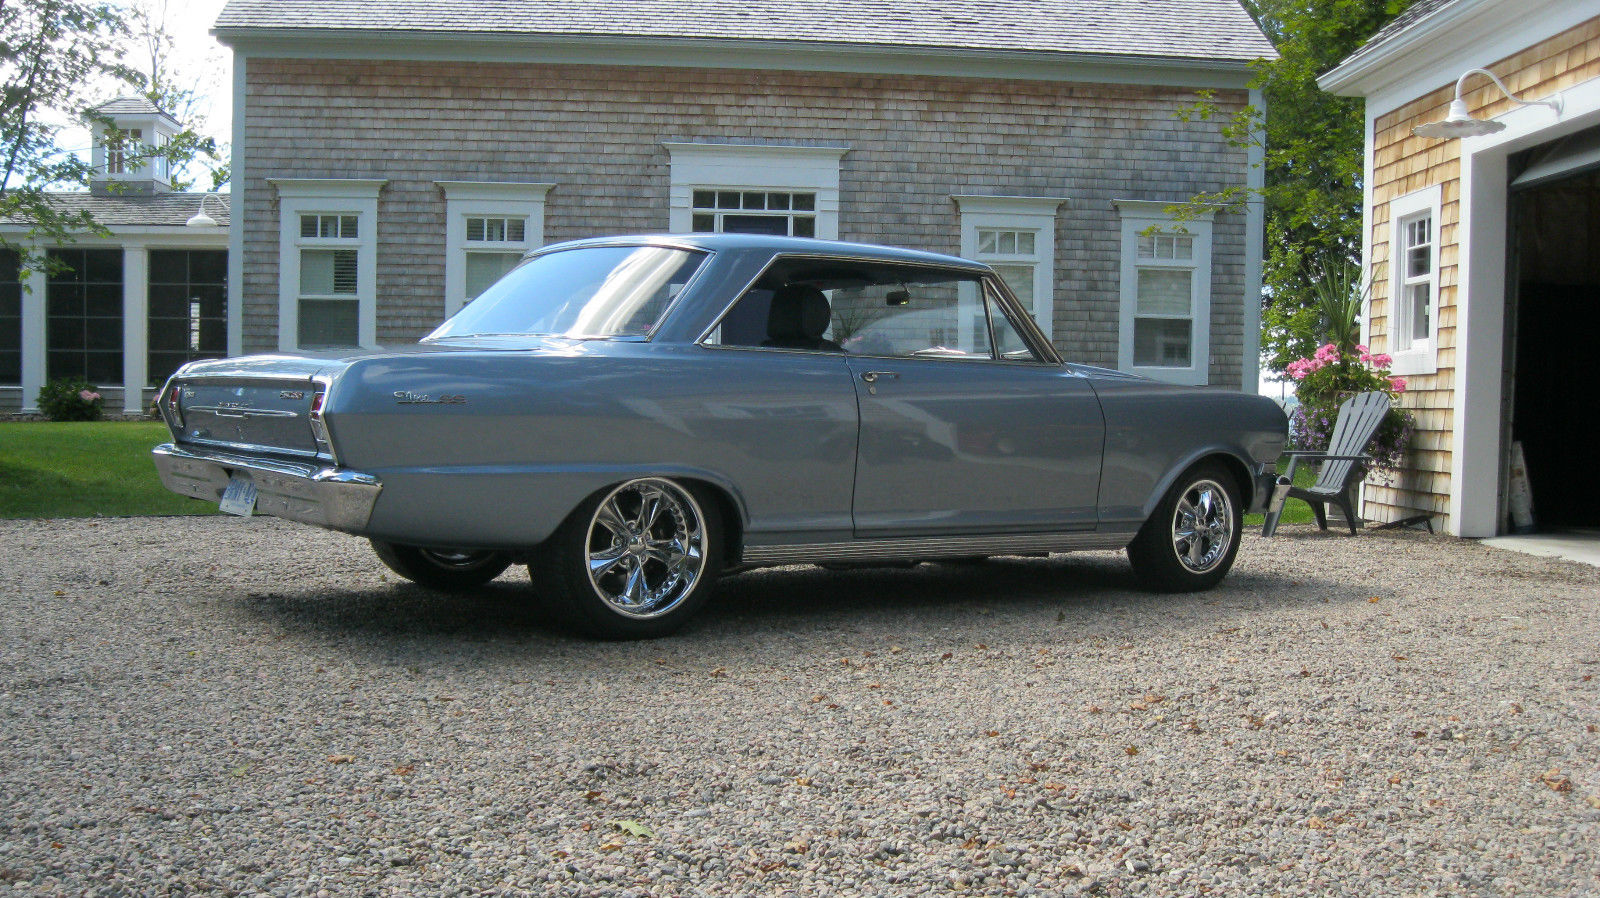 1963 NOVA SS Z06 For Sale In Pickering Ontario Canada